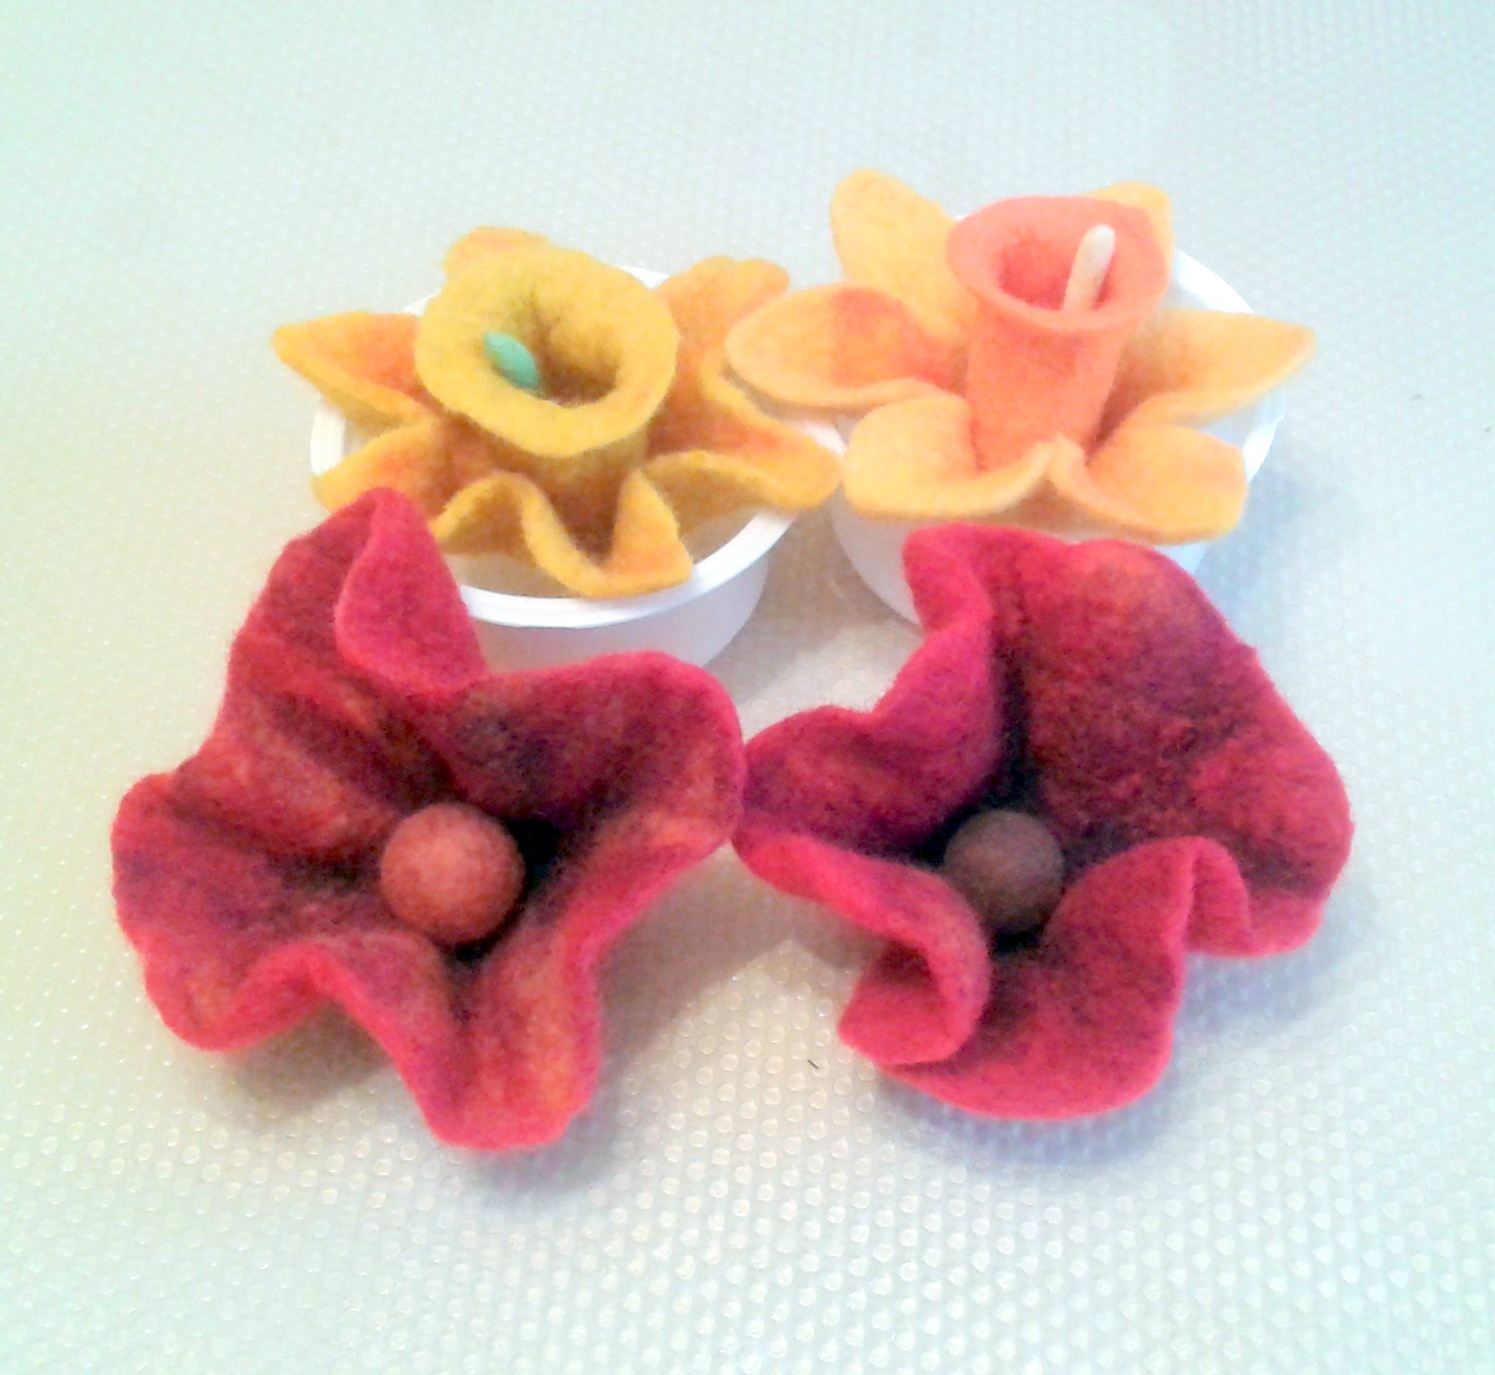 Handmade felted poppies and daffodils created by Jenny and Margaret with Textile Artist Raya Brown